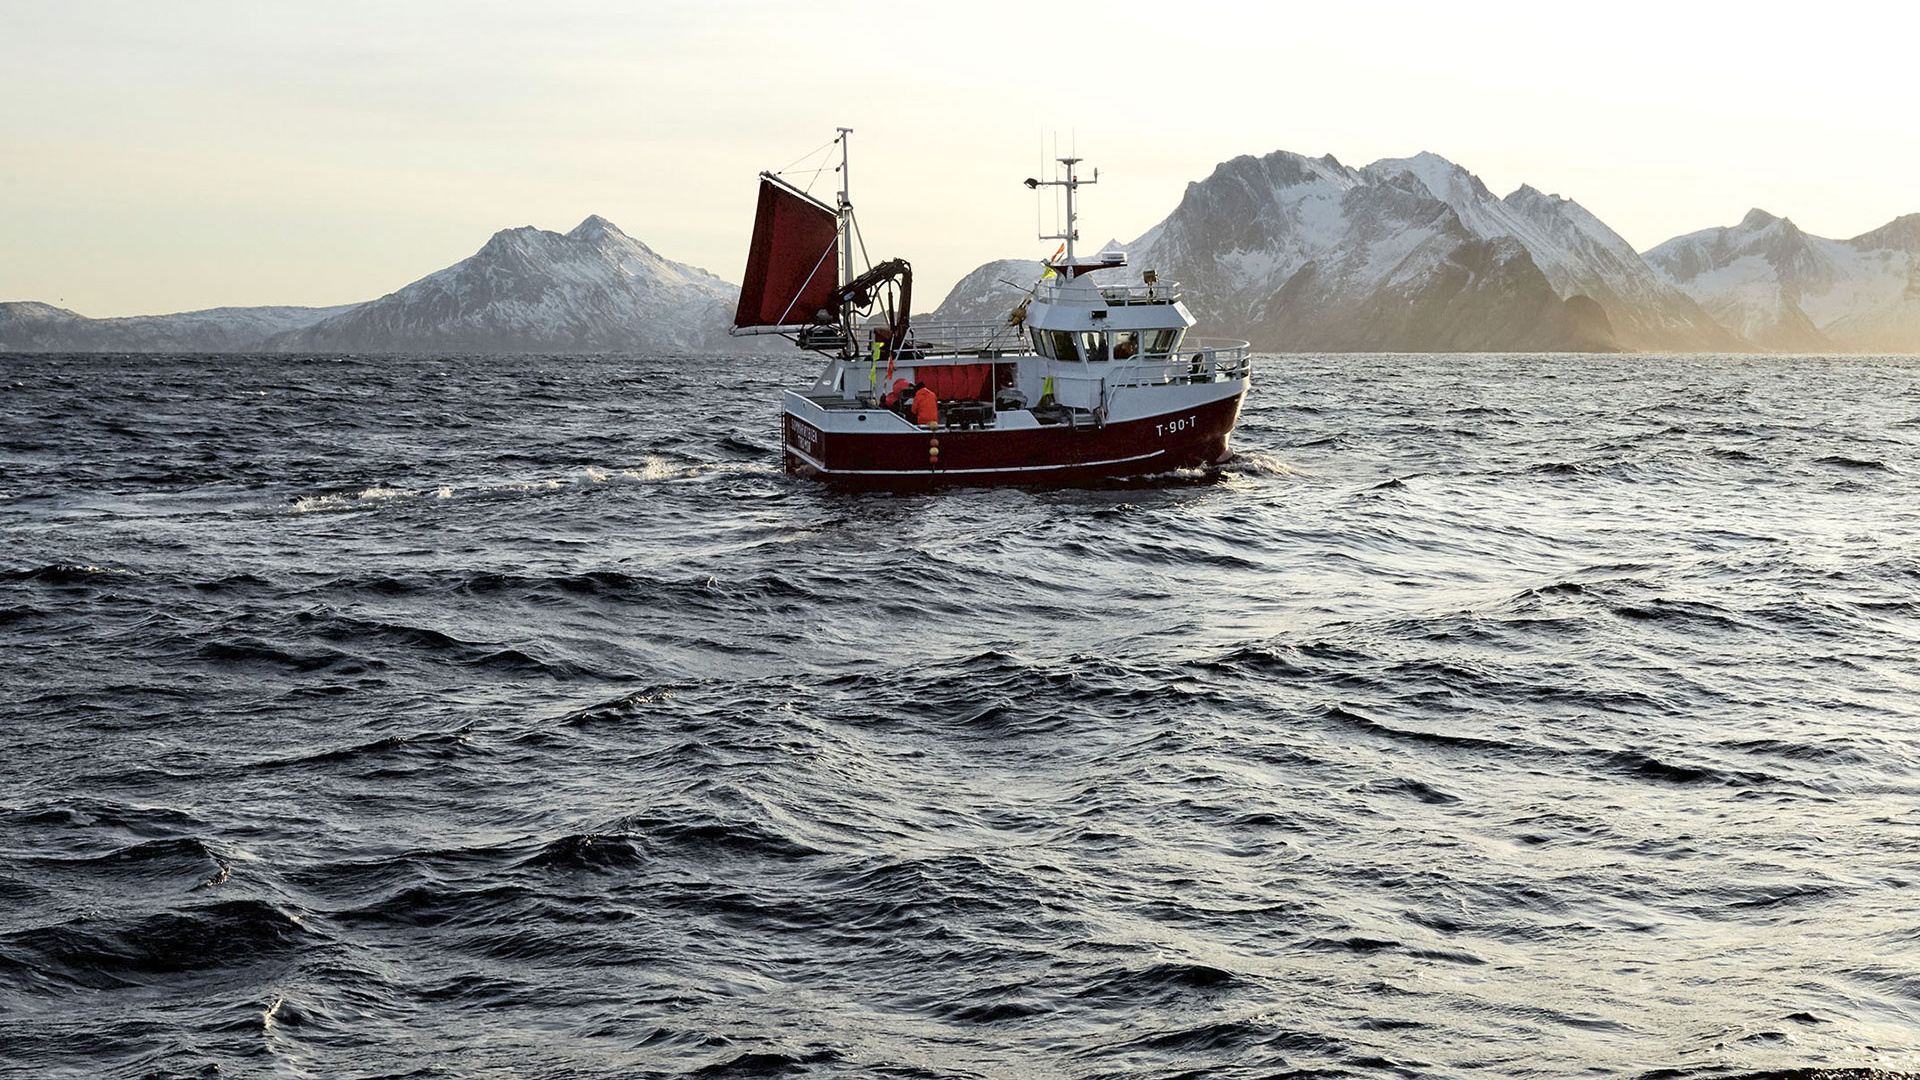 A Skrei fishing boat in northern Norway (photograph by Steve Lee)